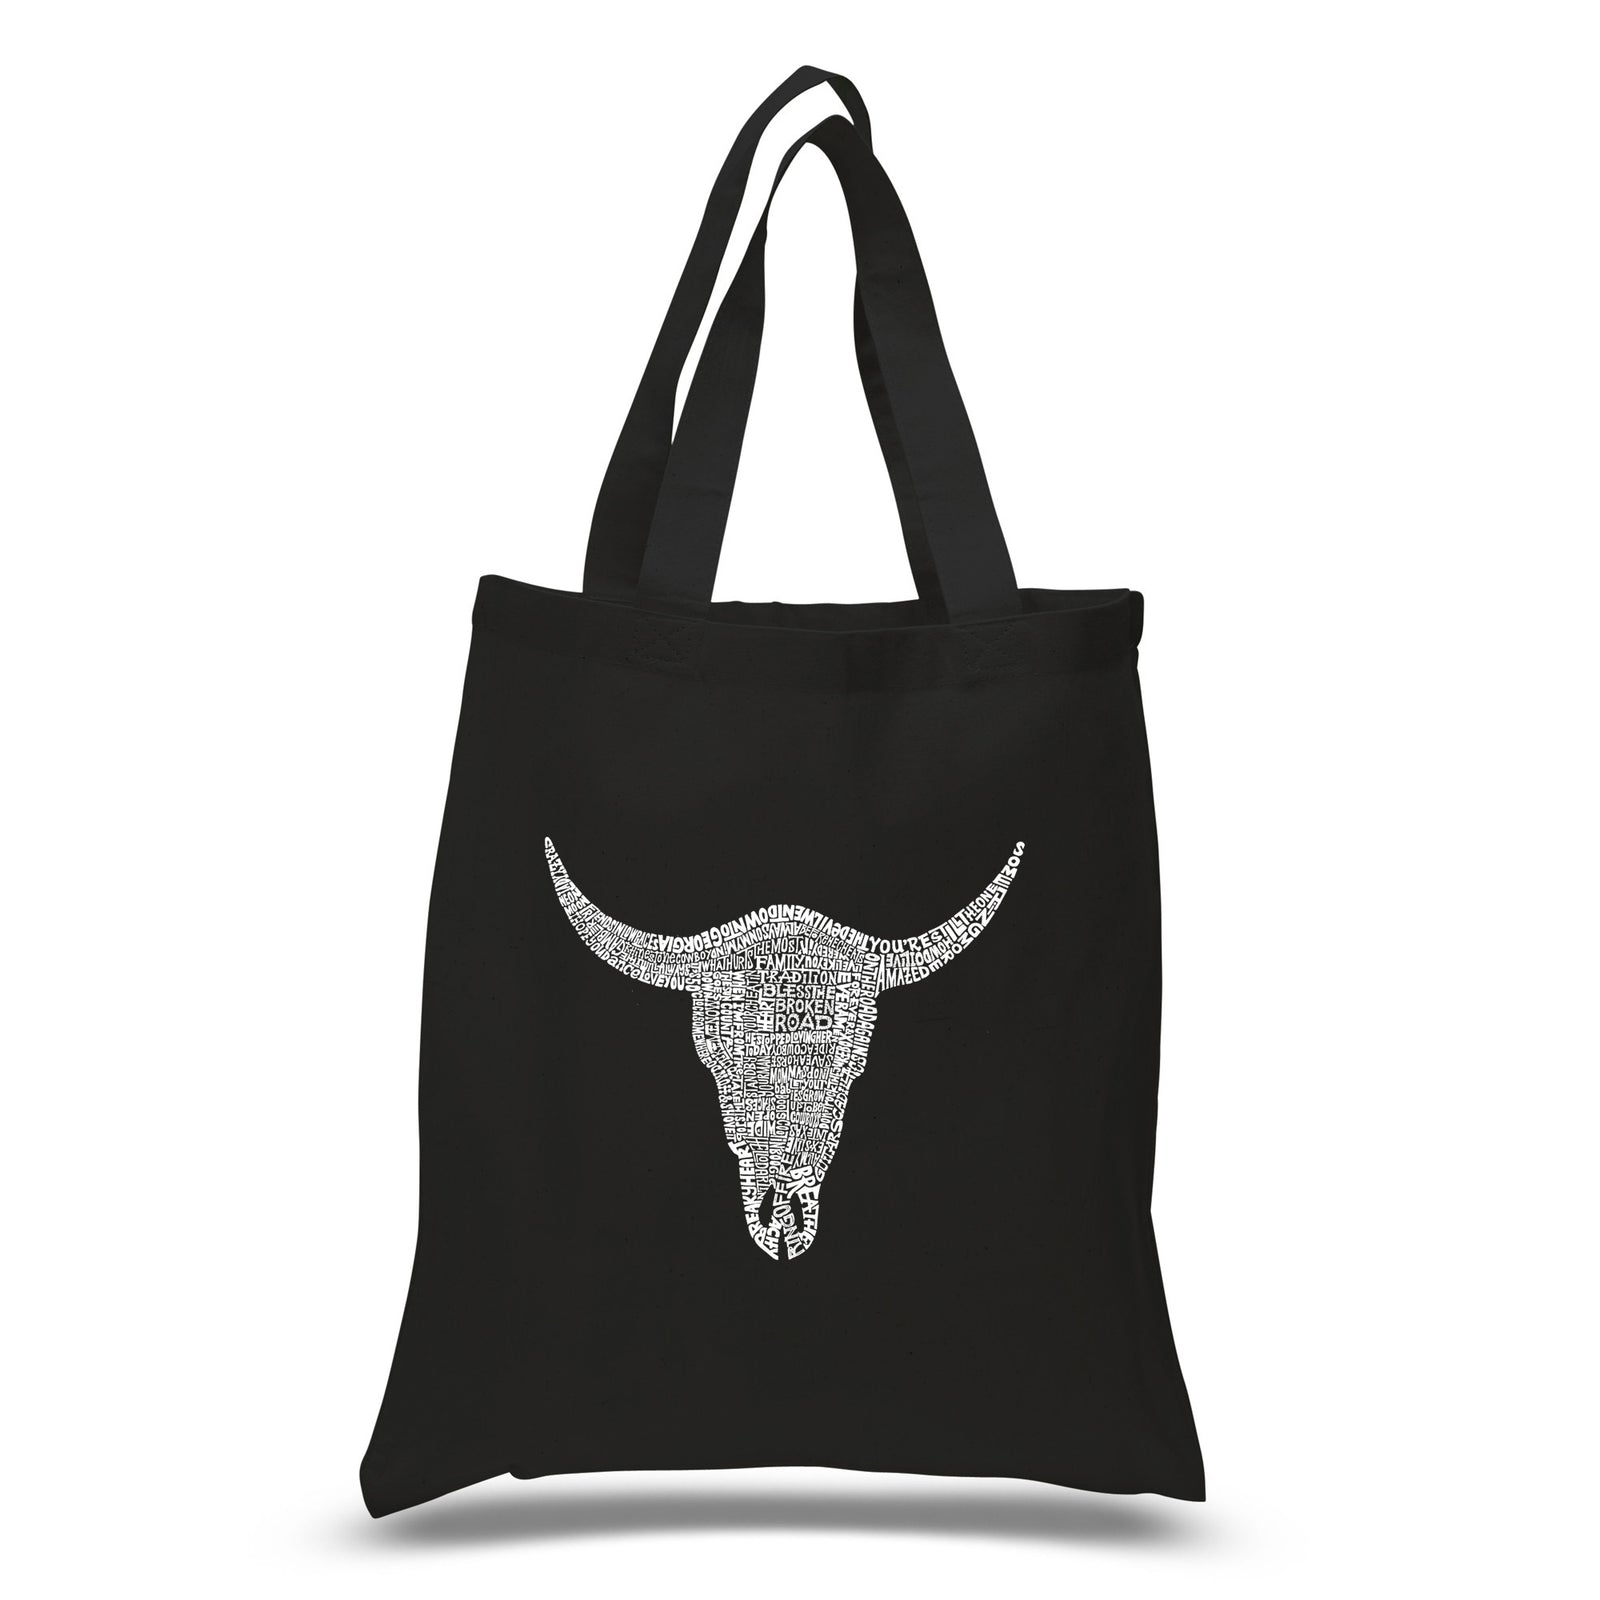 Small Tote Bag - COUNTRY MUSIC'S ALL TIME HITS